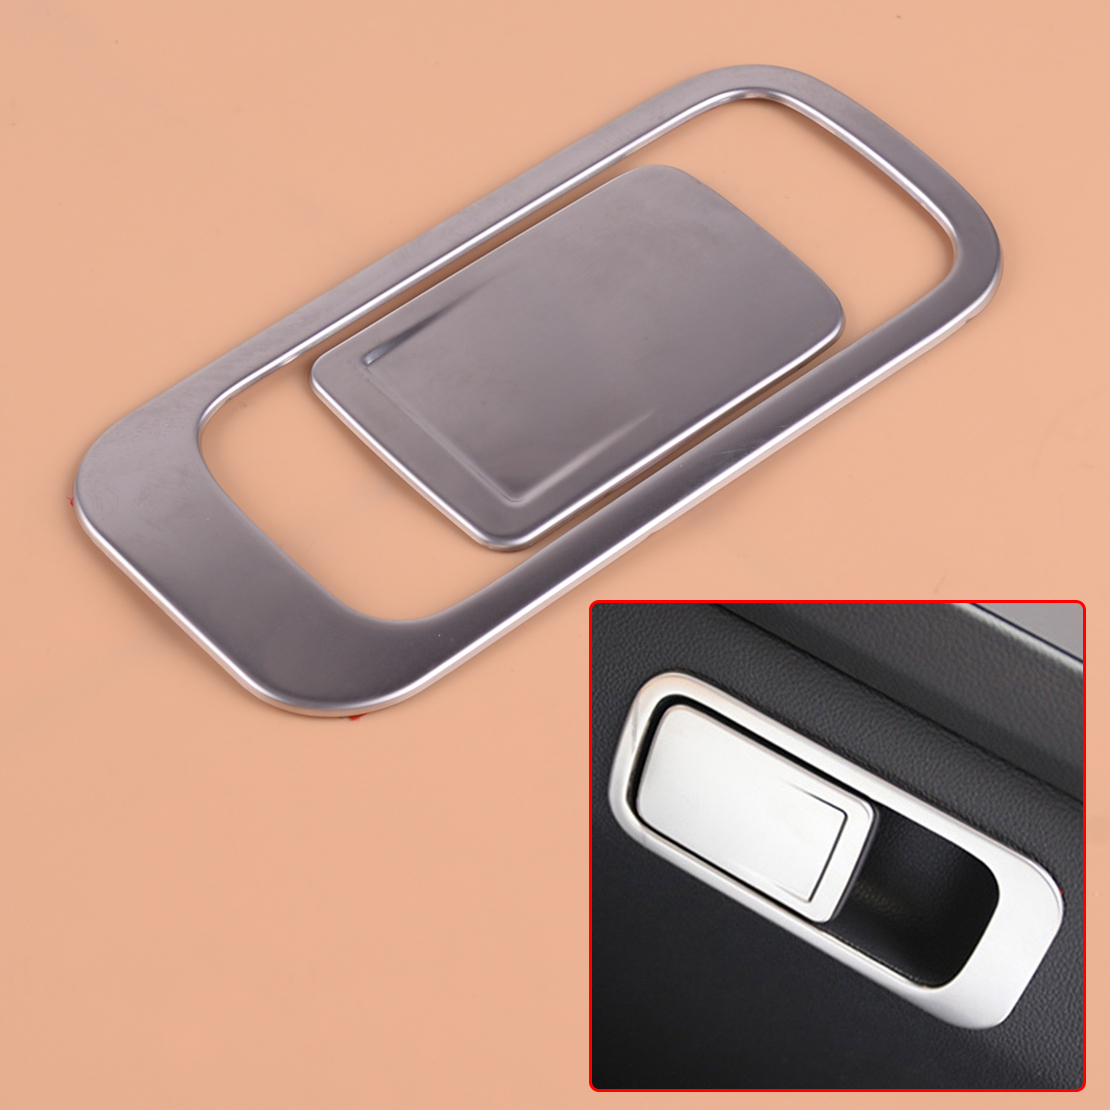 CITALL Chrome CCar Auto Glove Box Handle Cover Trim Sticker Stainless fit for VW <font><b>Tiguan</b></font> MK2 20162017 2018 <font><b>2019</b></font> image